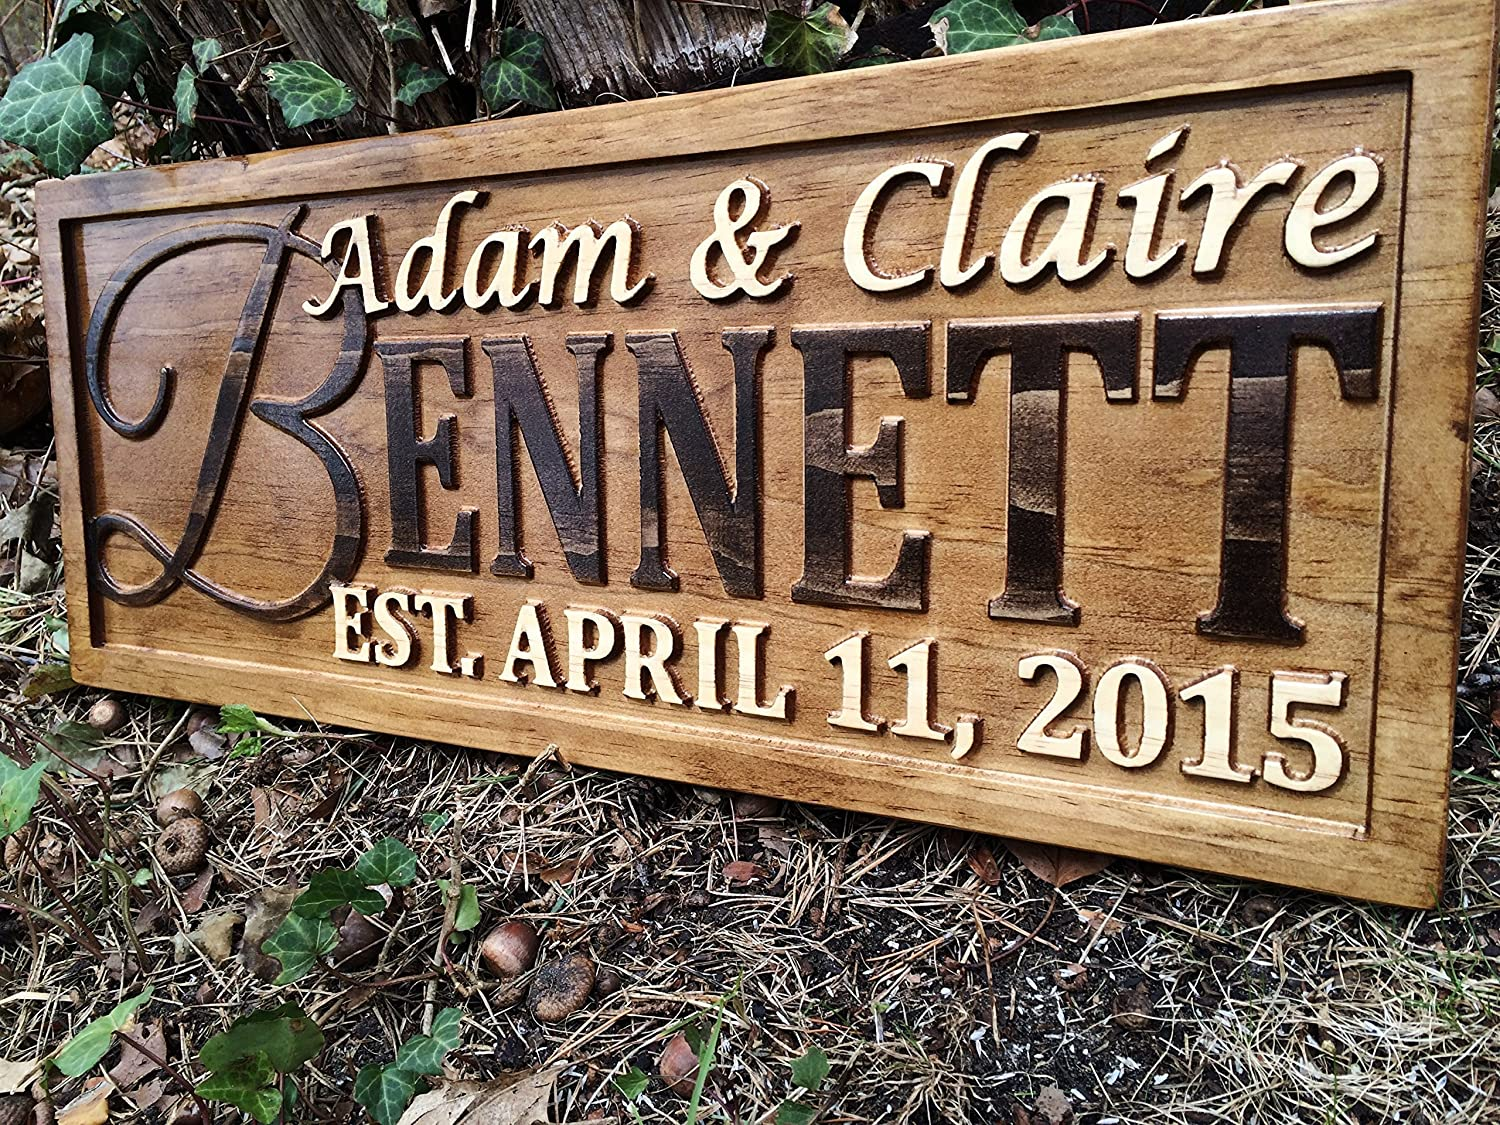 Amazon Com Personalized Family Name Sign Personalized Wedding Gifts Wall Art Rustic Home Decor Custom Carved Wooden Signs Couples 5 Year Wood Anniversary Gift Handmade